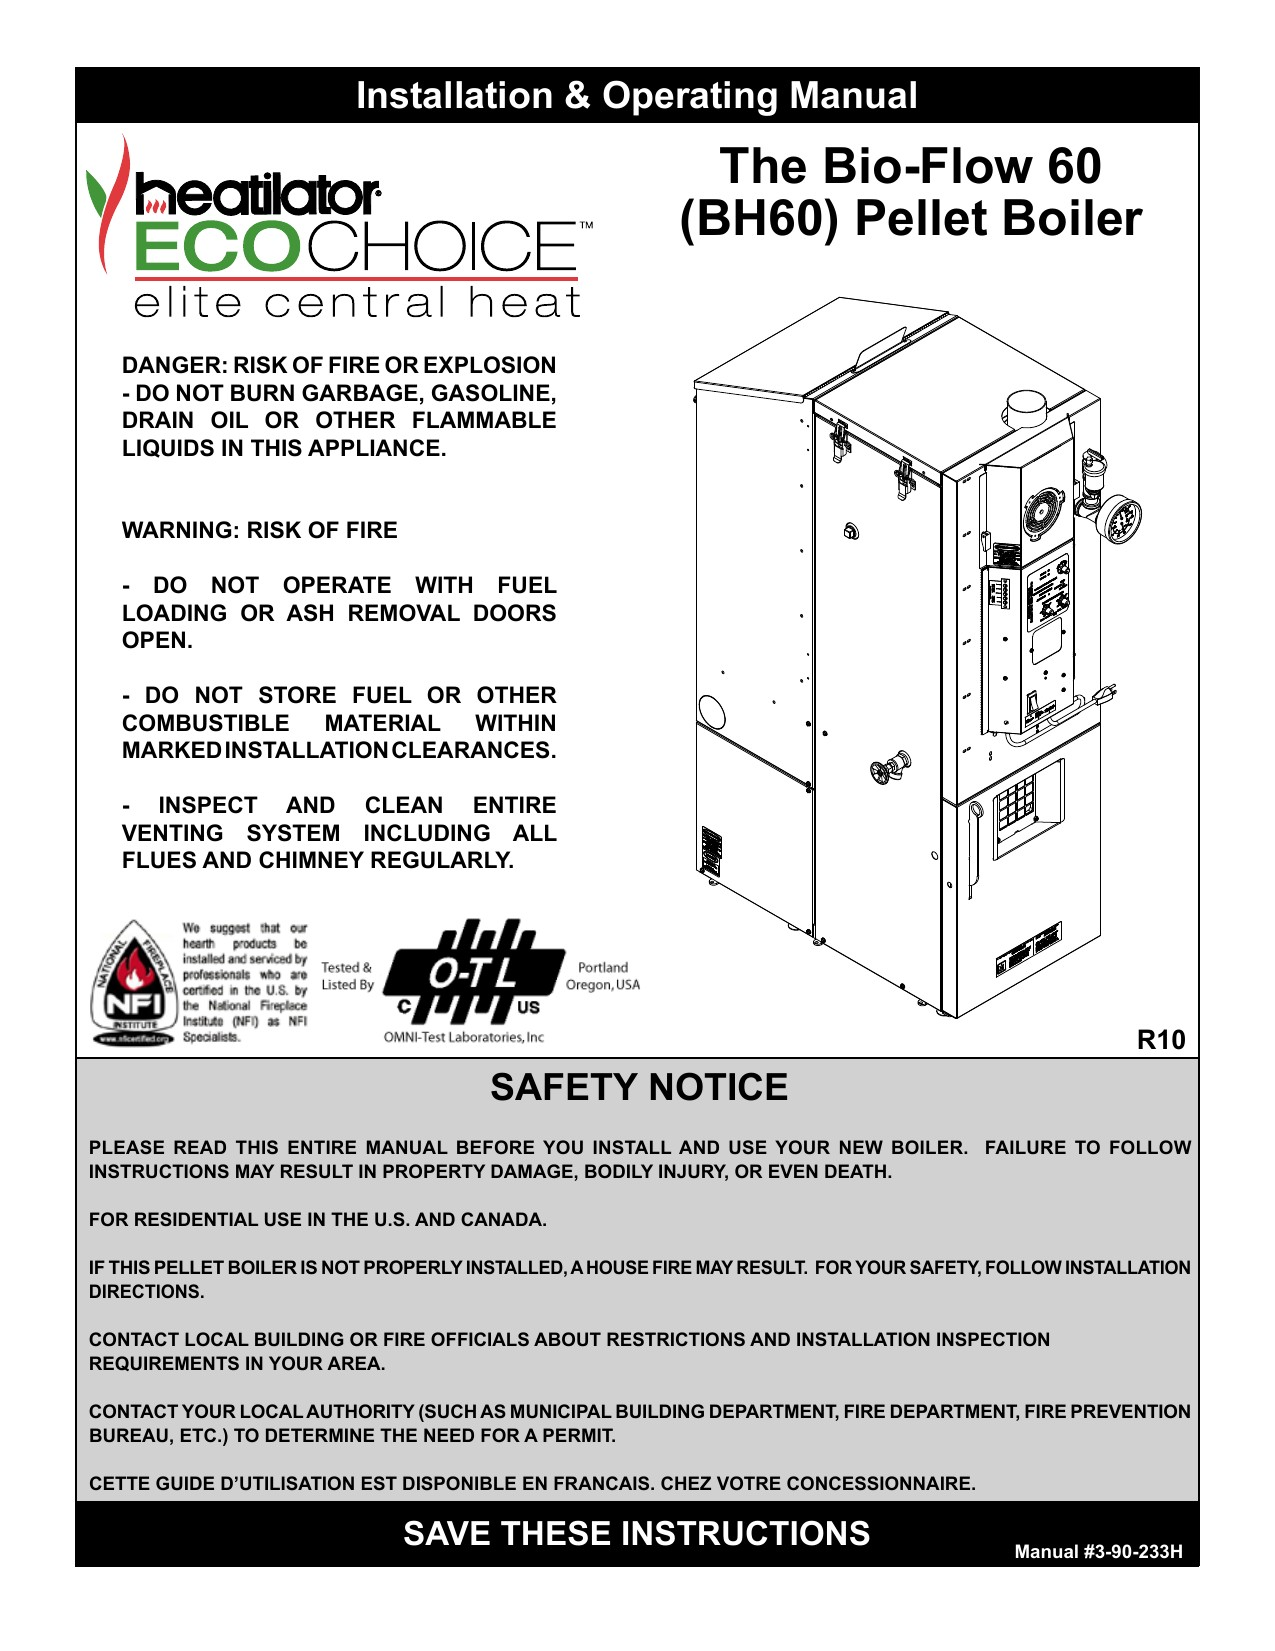 Heatiator Boiler BH60 User manual